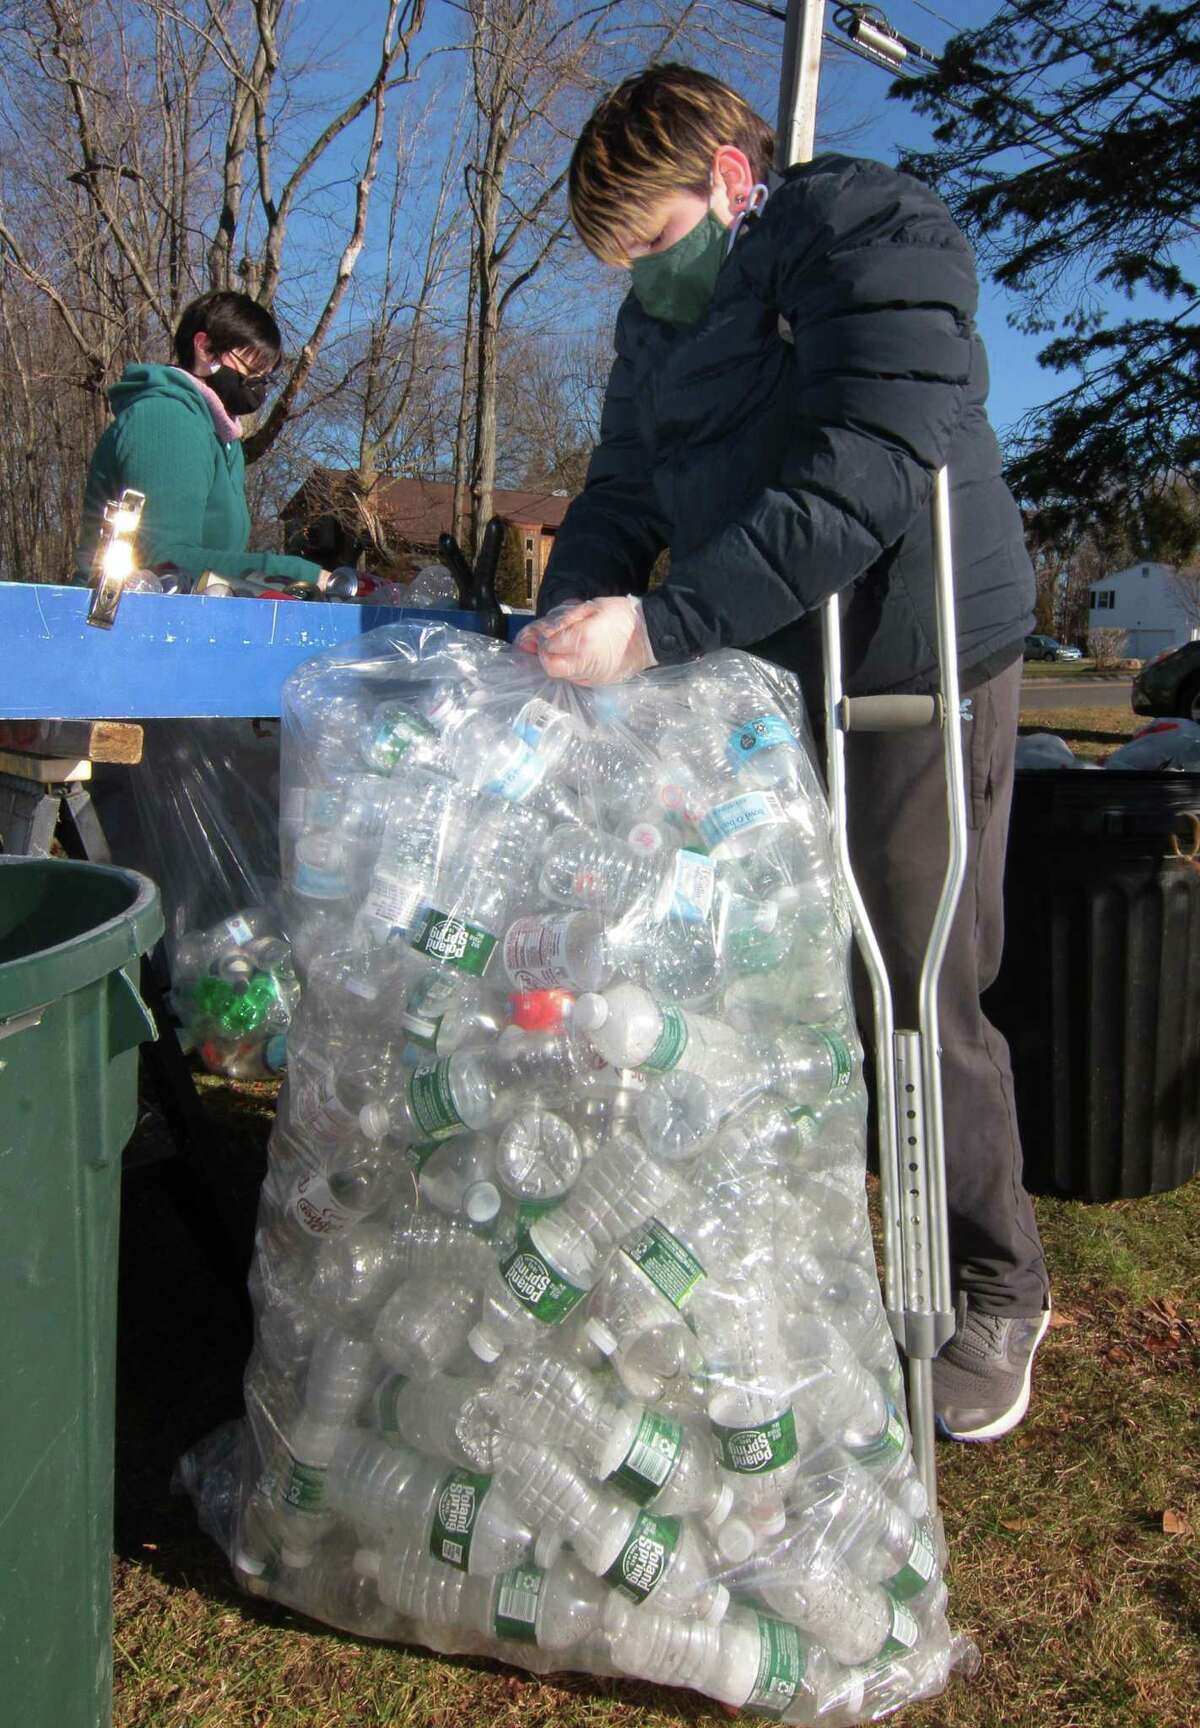 Scout Tim Andrade, 12, ties a full bag of plastic bottles during Boy Scout Troop 25's monthly redeemable bottle and can drive at First United Methodist Church in Shelton, Conn., on Saturday Jan. 9, 2021. The event, which helps raise money for scouting activities, is held each first Saturday of each month from 10 a.m. to 1 p.m.